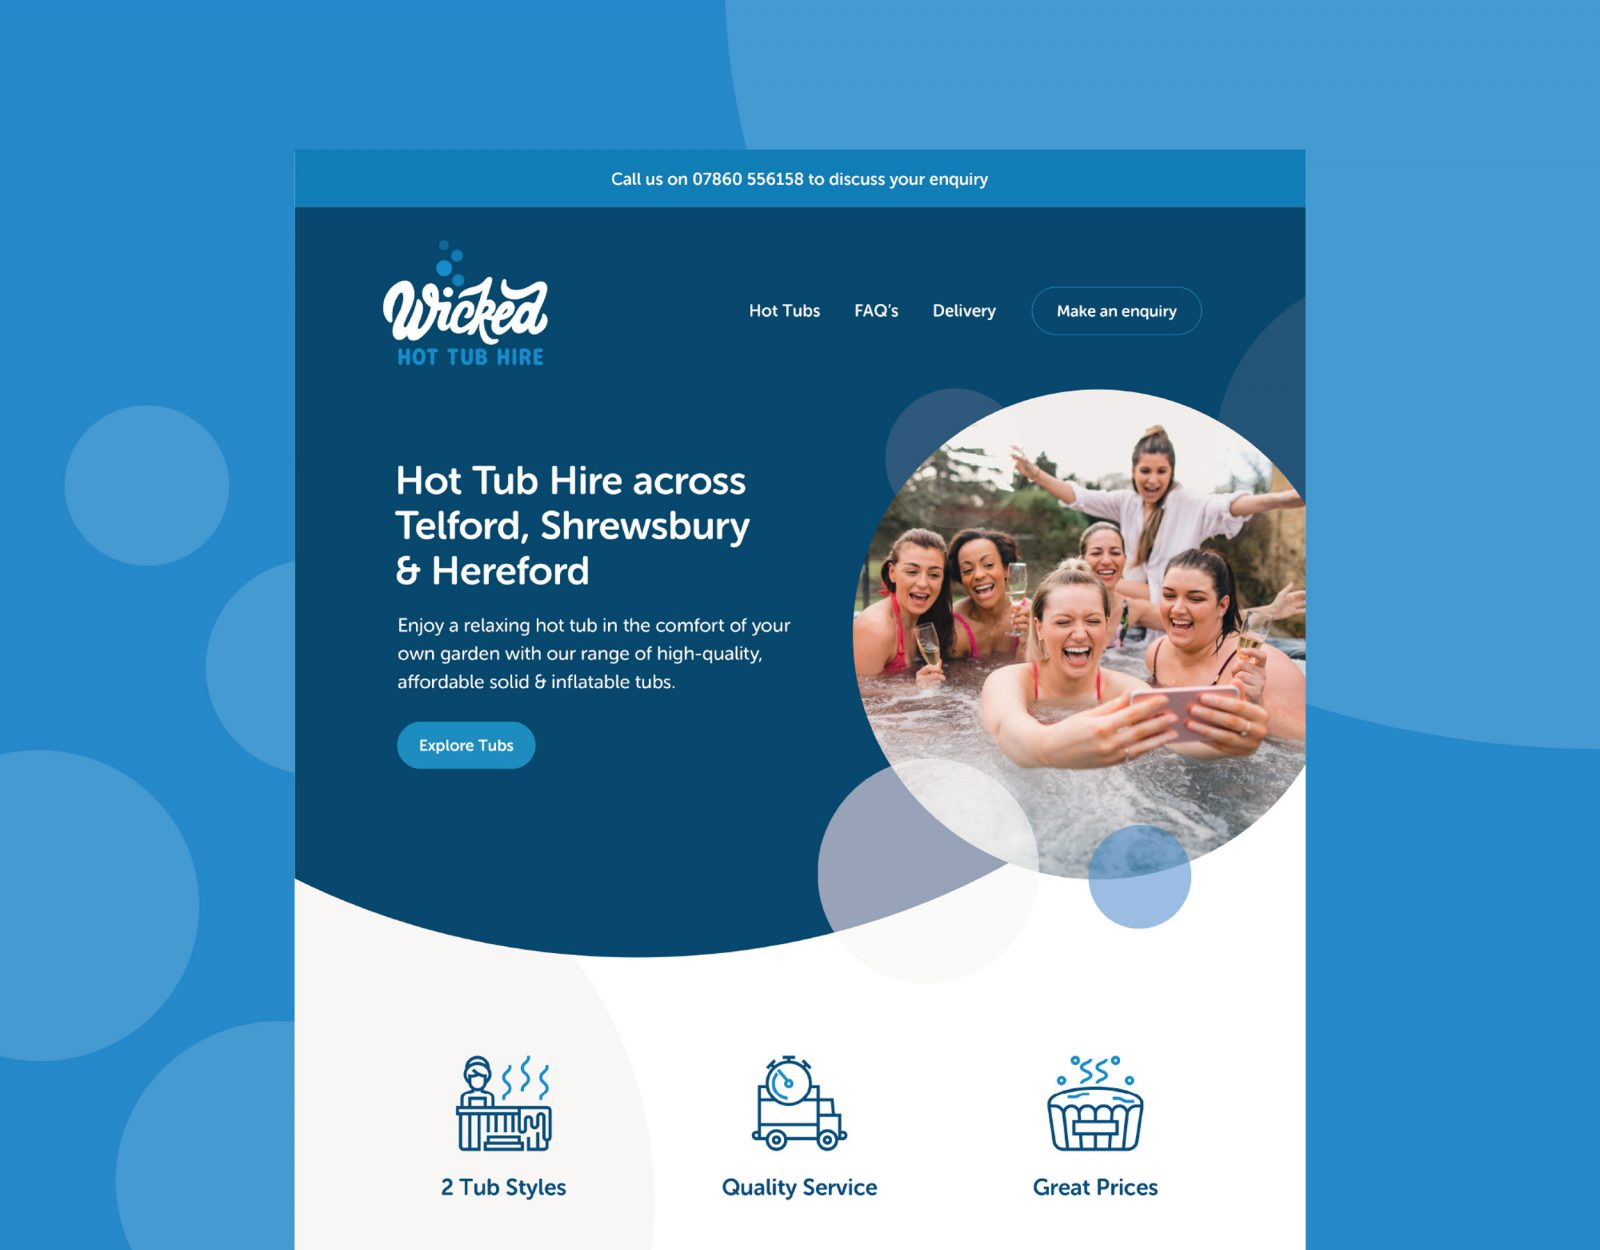 Wicked Hot Tub Hire website